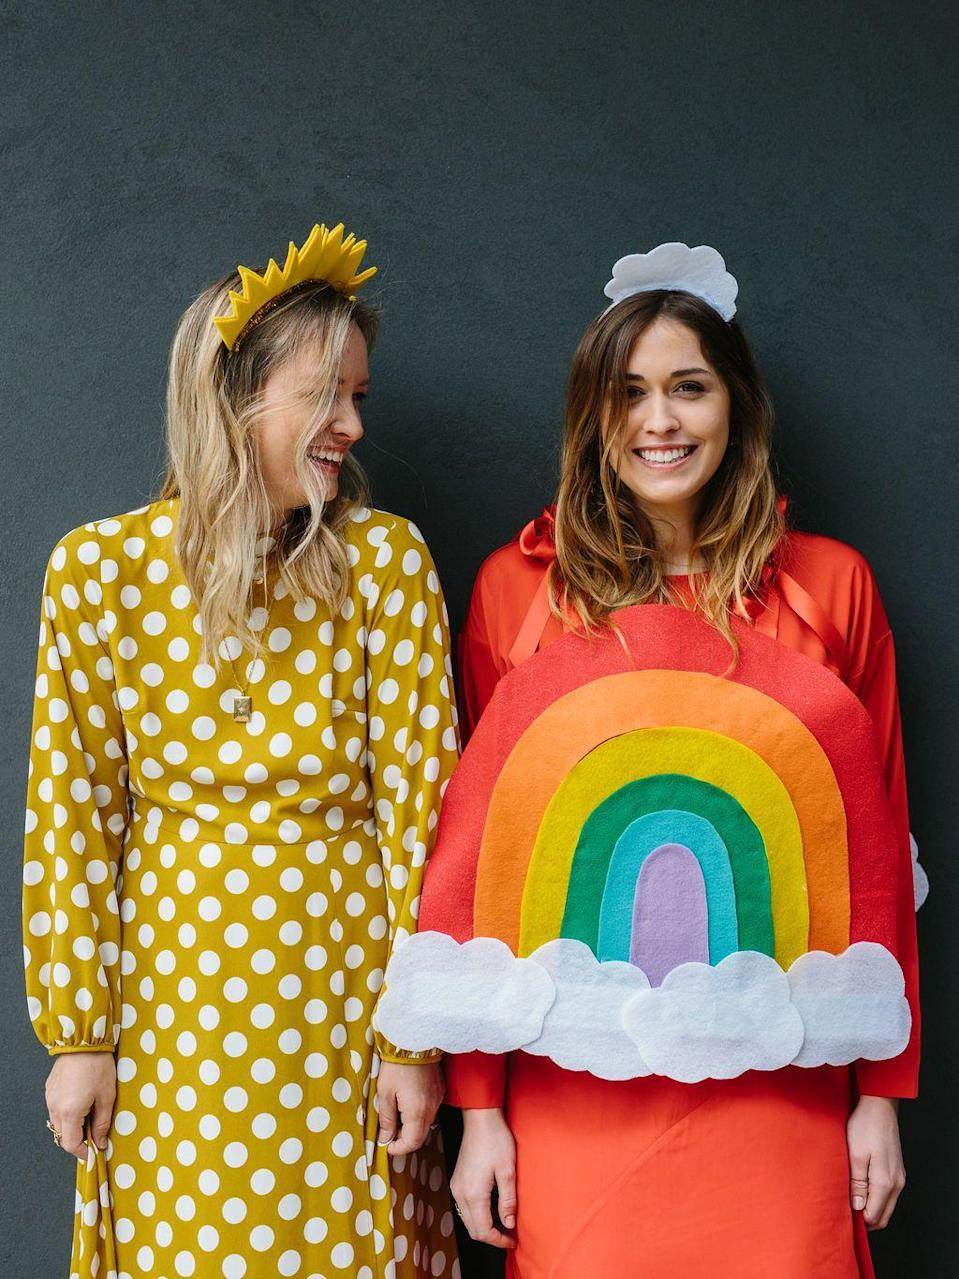 """<p>You and your bestie will love dressing up in this fun sunshine and rainbow costume. </p><p><strong>G</strong><strong>et the tutorial at <a href=""""https://theeffortlesschic.com/rainbow-costume-diy-sun-custume/"""" rel=""""nofollow noopener"""" target=""""_blank"""" data-ylk=""""slk:The Effortless Chic"""" class=""""link rapid-noclick-resp"""">The Effortless Chic</a>.</strong></p>"""